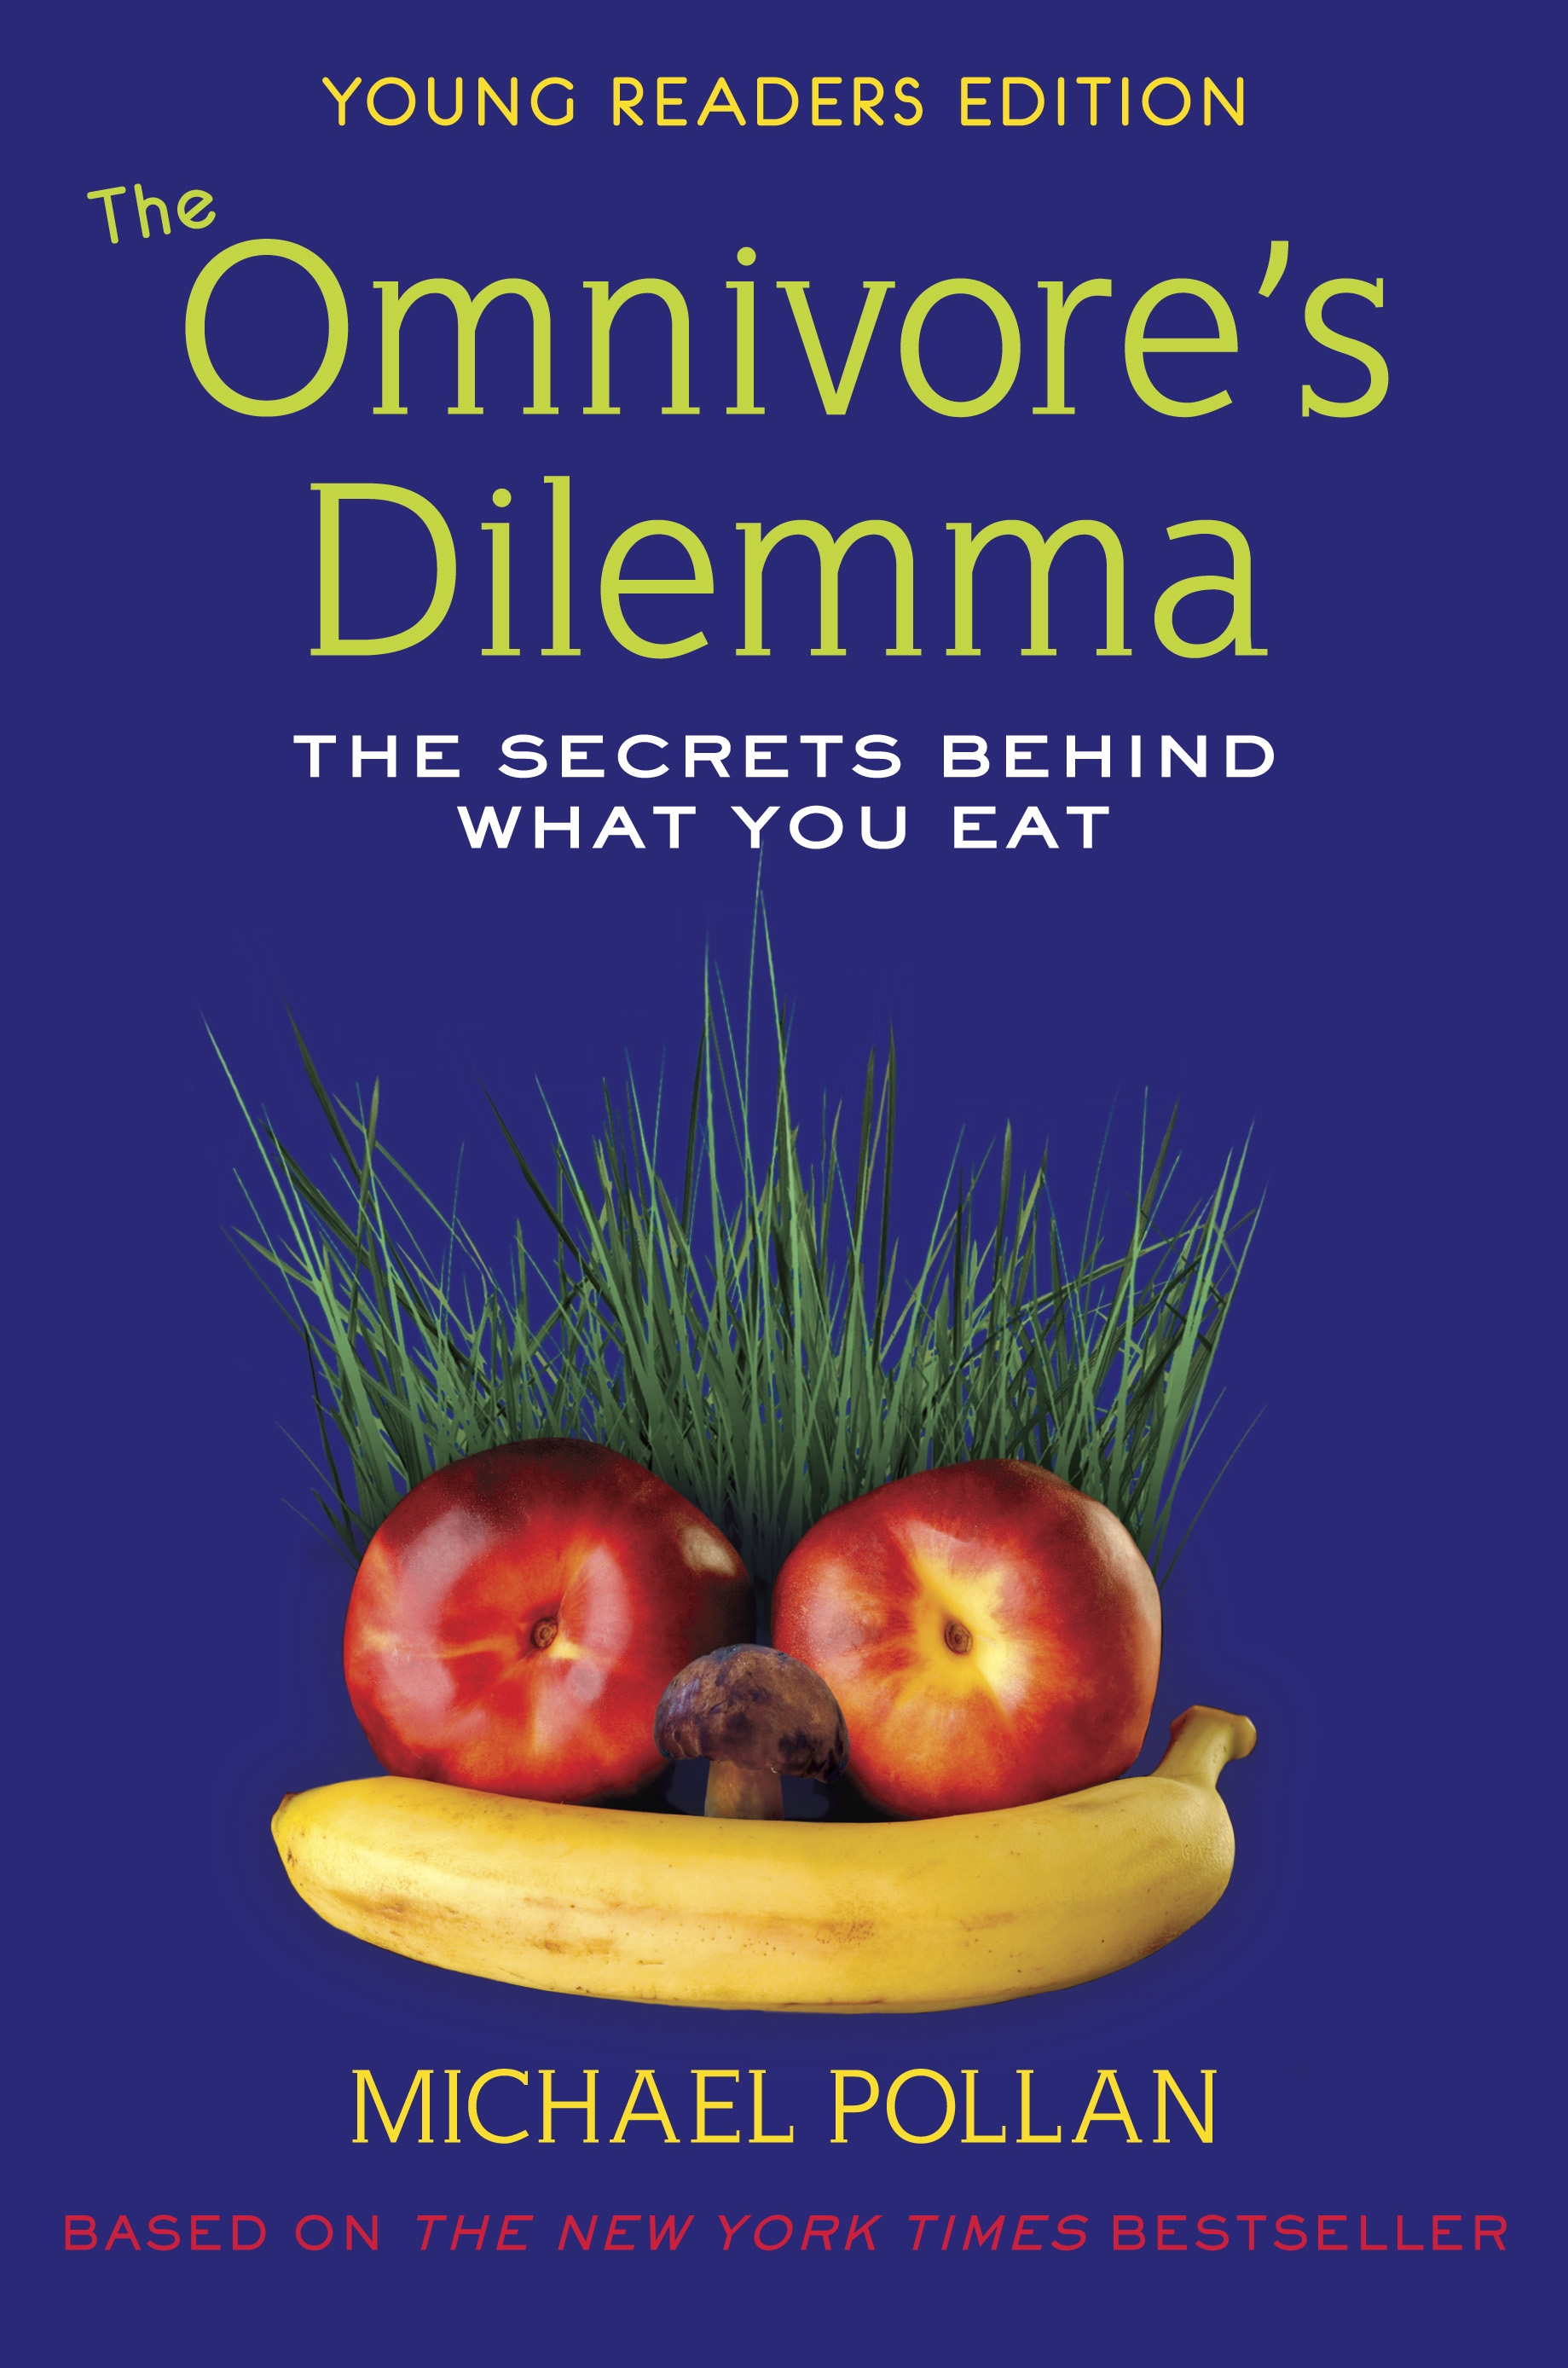 omnivores-dilemma-young-readers